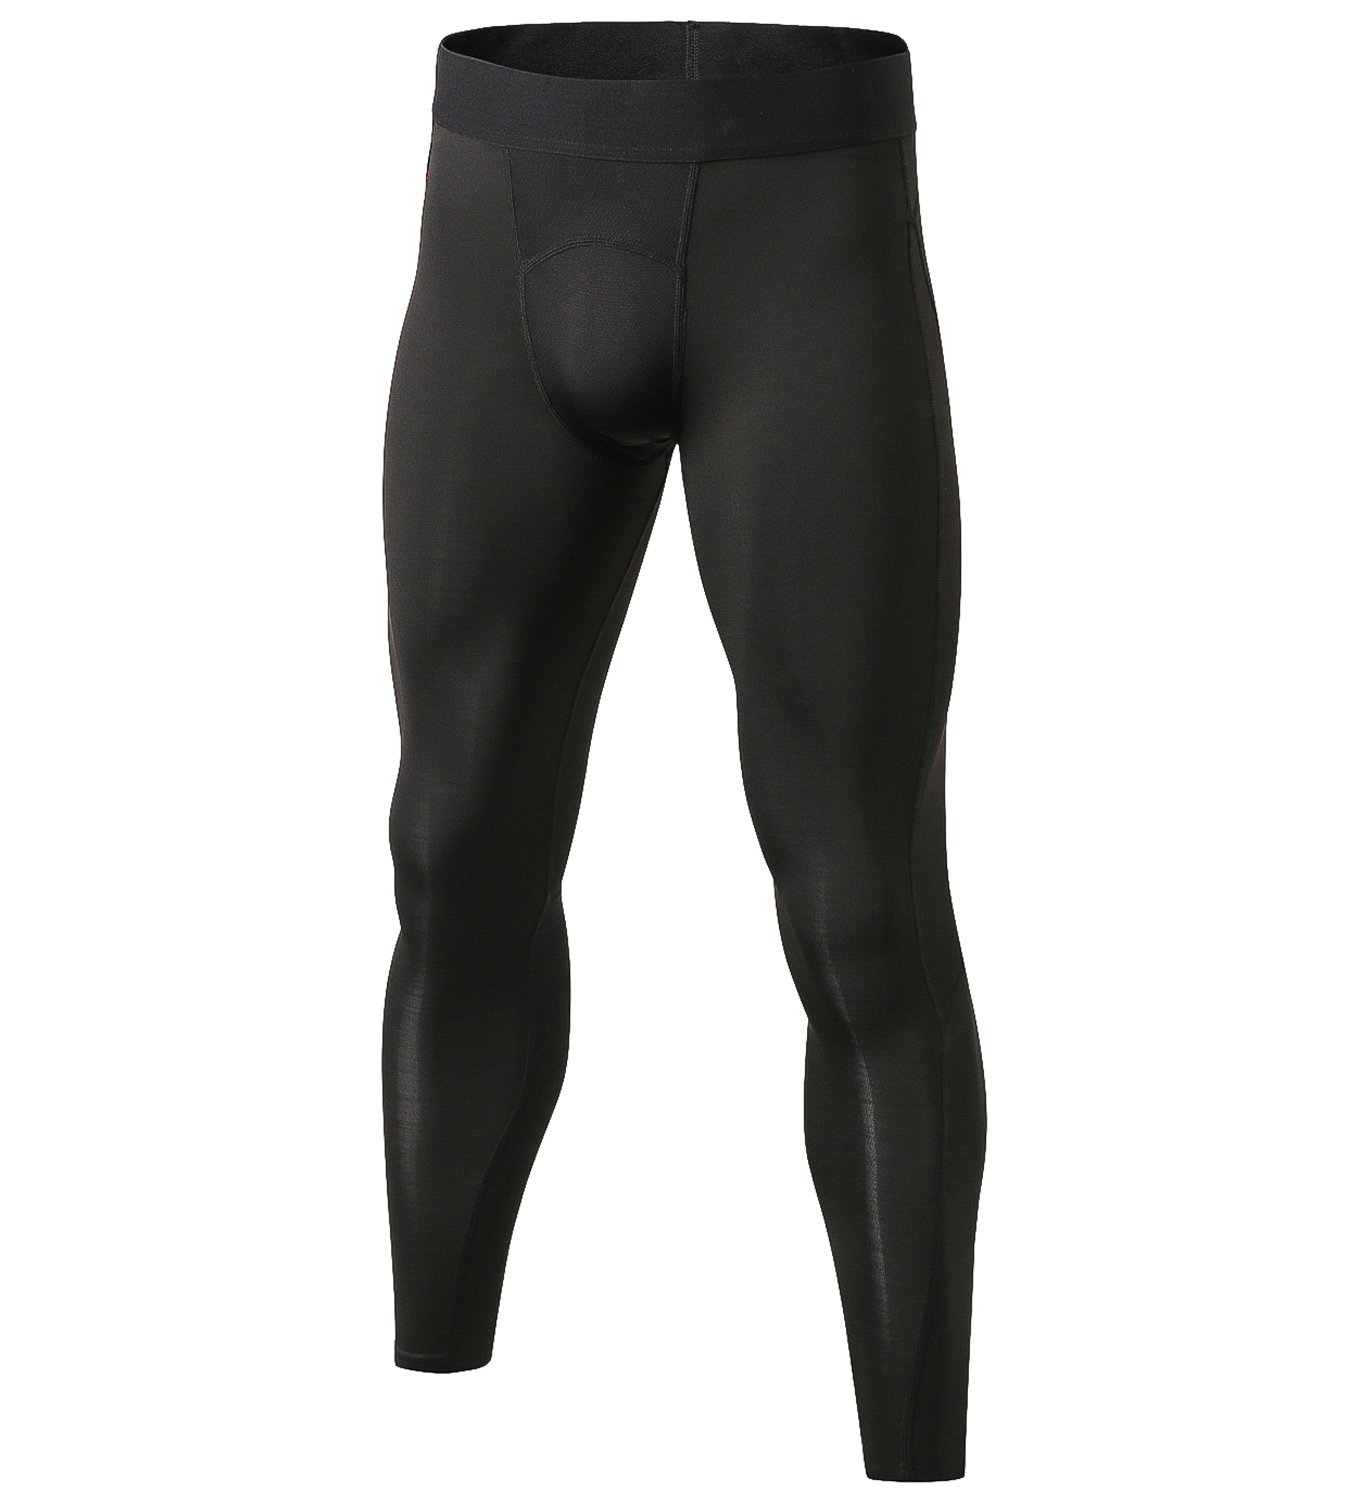 Lavento Men's Compression Pants Mesh Cool Dry Workout Tights (1 Pack-1040 Black, Large)